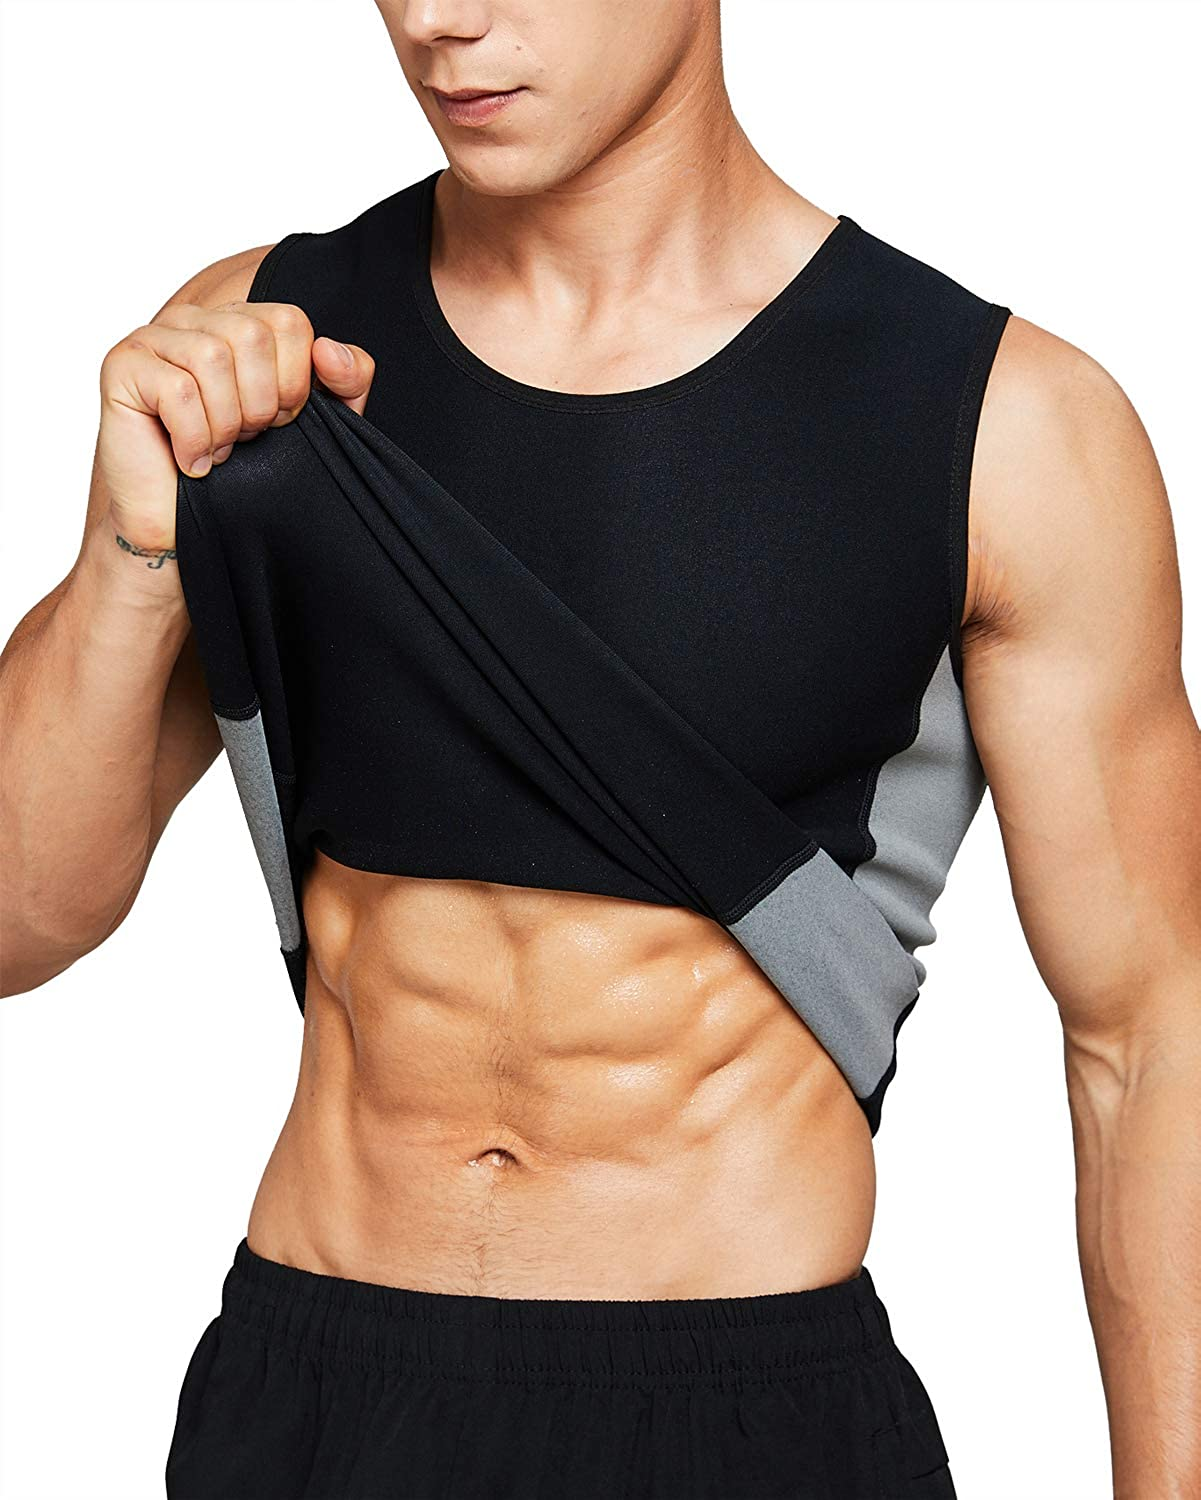 Roseate Men's Body Shaper Hot Sweat Workout Tank Top Slimming Sauna Vest Neoprene Compression Thermal Shirt: Clothing